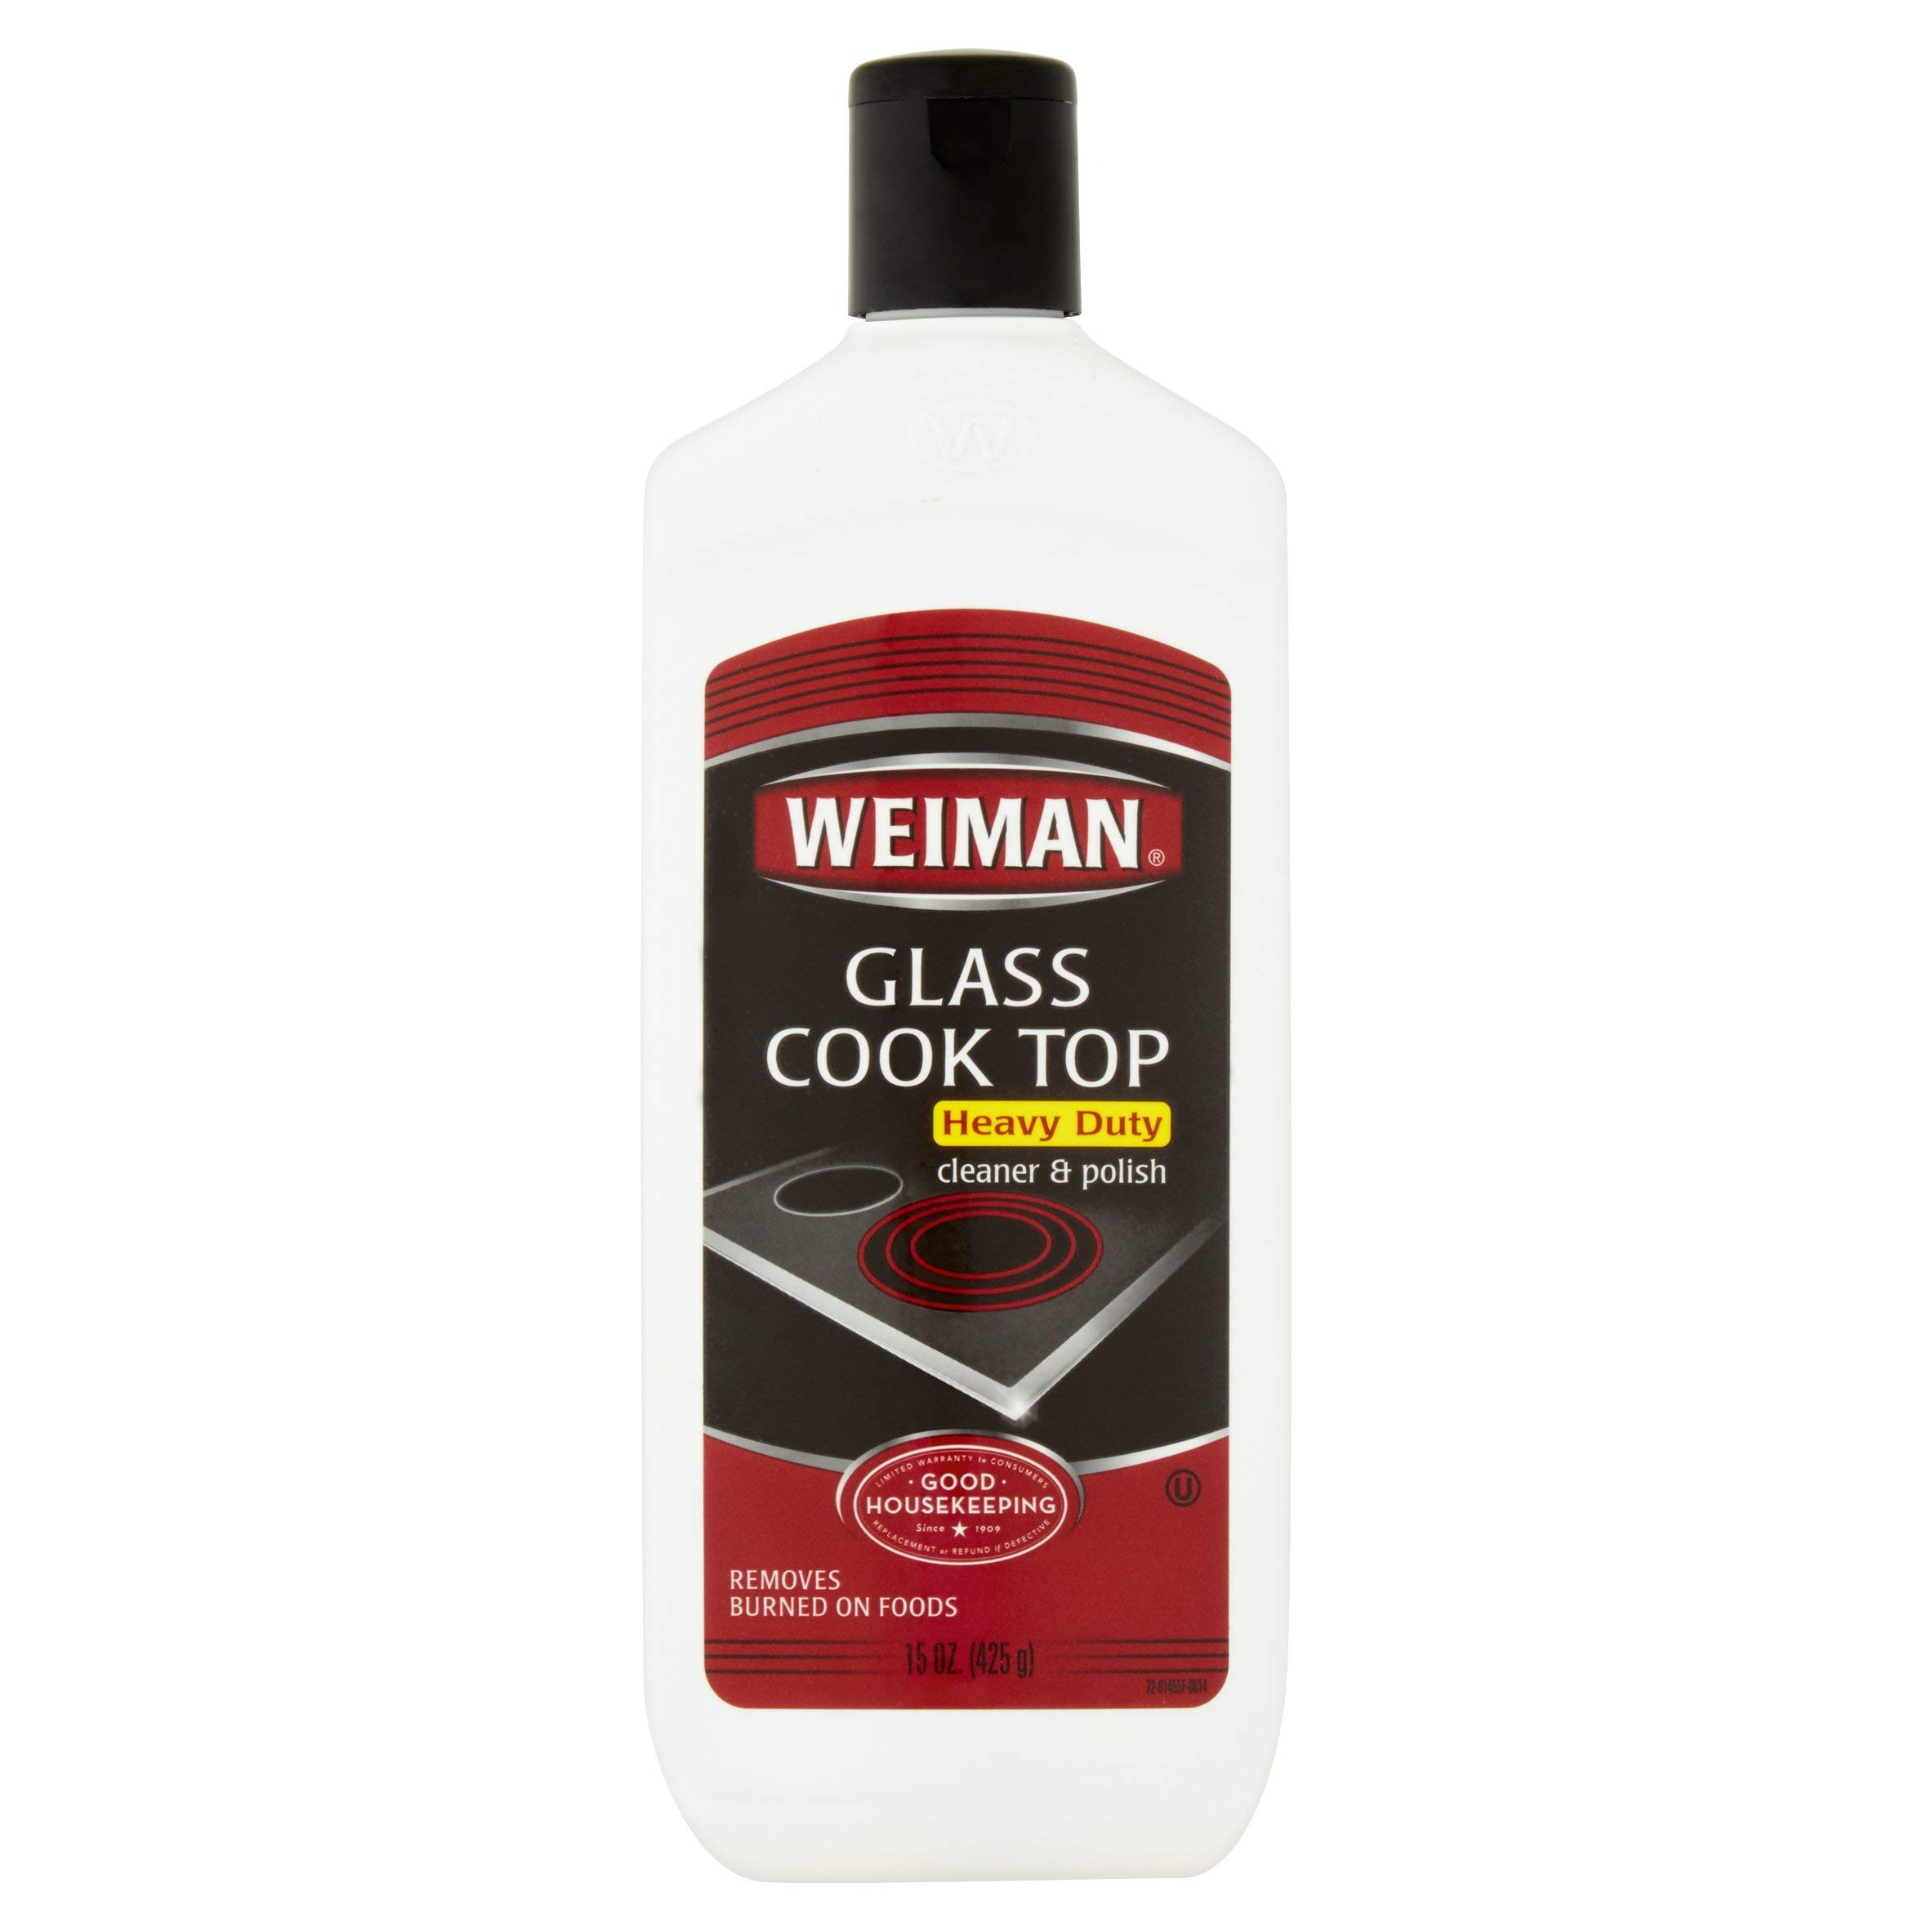 Weiman Glass Cooktop Heavy Duty Cleaner & Polish - Shines and Protects Glass/Ceramic Smooth Top Ranges with its Gentle Formula - 15 Oz, Pack of 7 by  (Image #1)